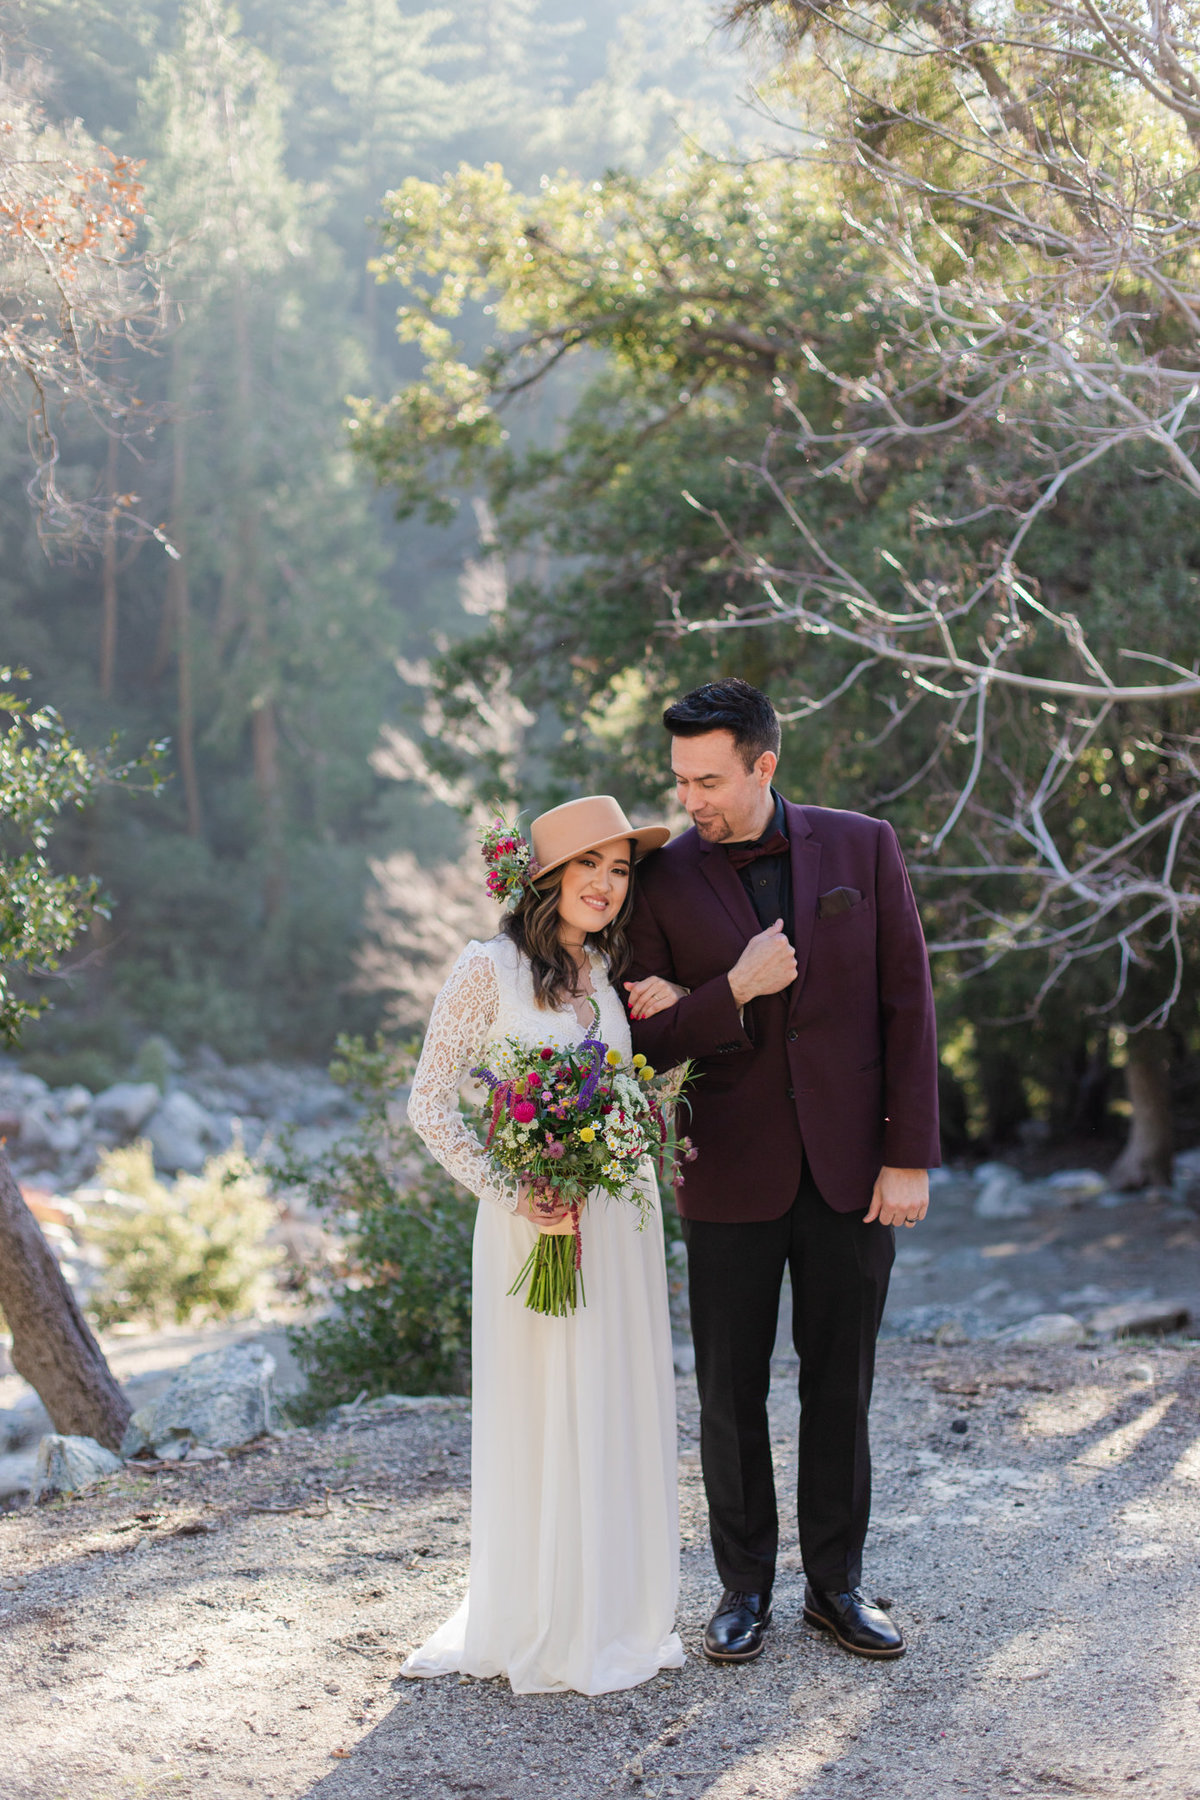 Mt. Baldy Elopement, Mt. Baldy Styled Shoot, Mt. Baldy Wedding, Forest Elopement, Forest Wedding, Boho Wedding, Boho Elopement, Mt. Baldy Boho, Forest Boho, Woodland Boho-10